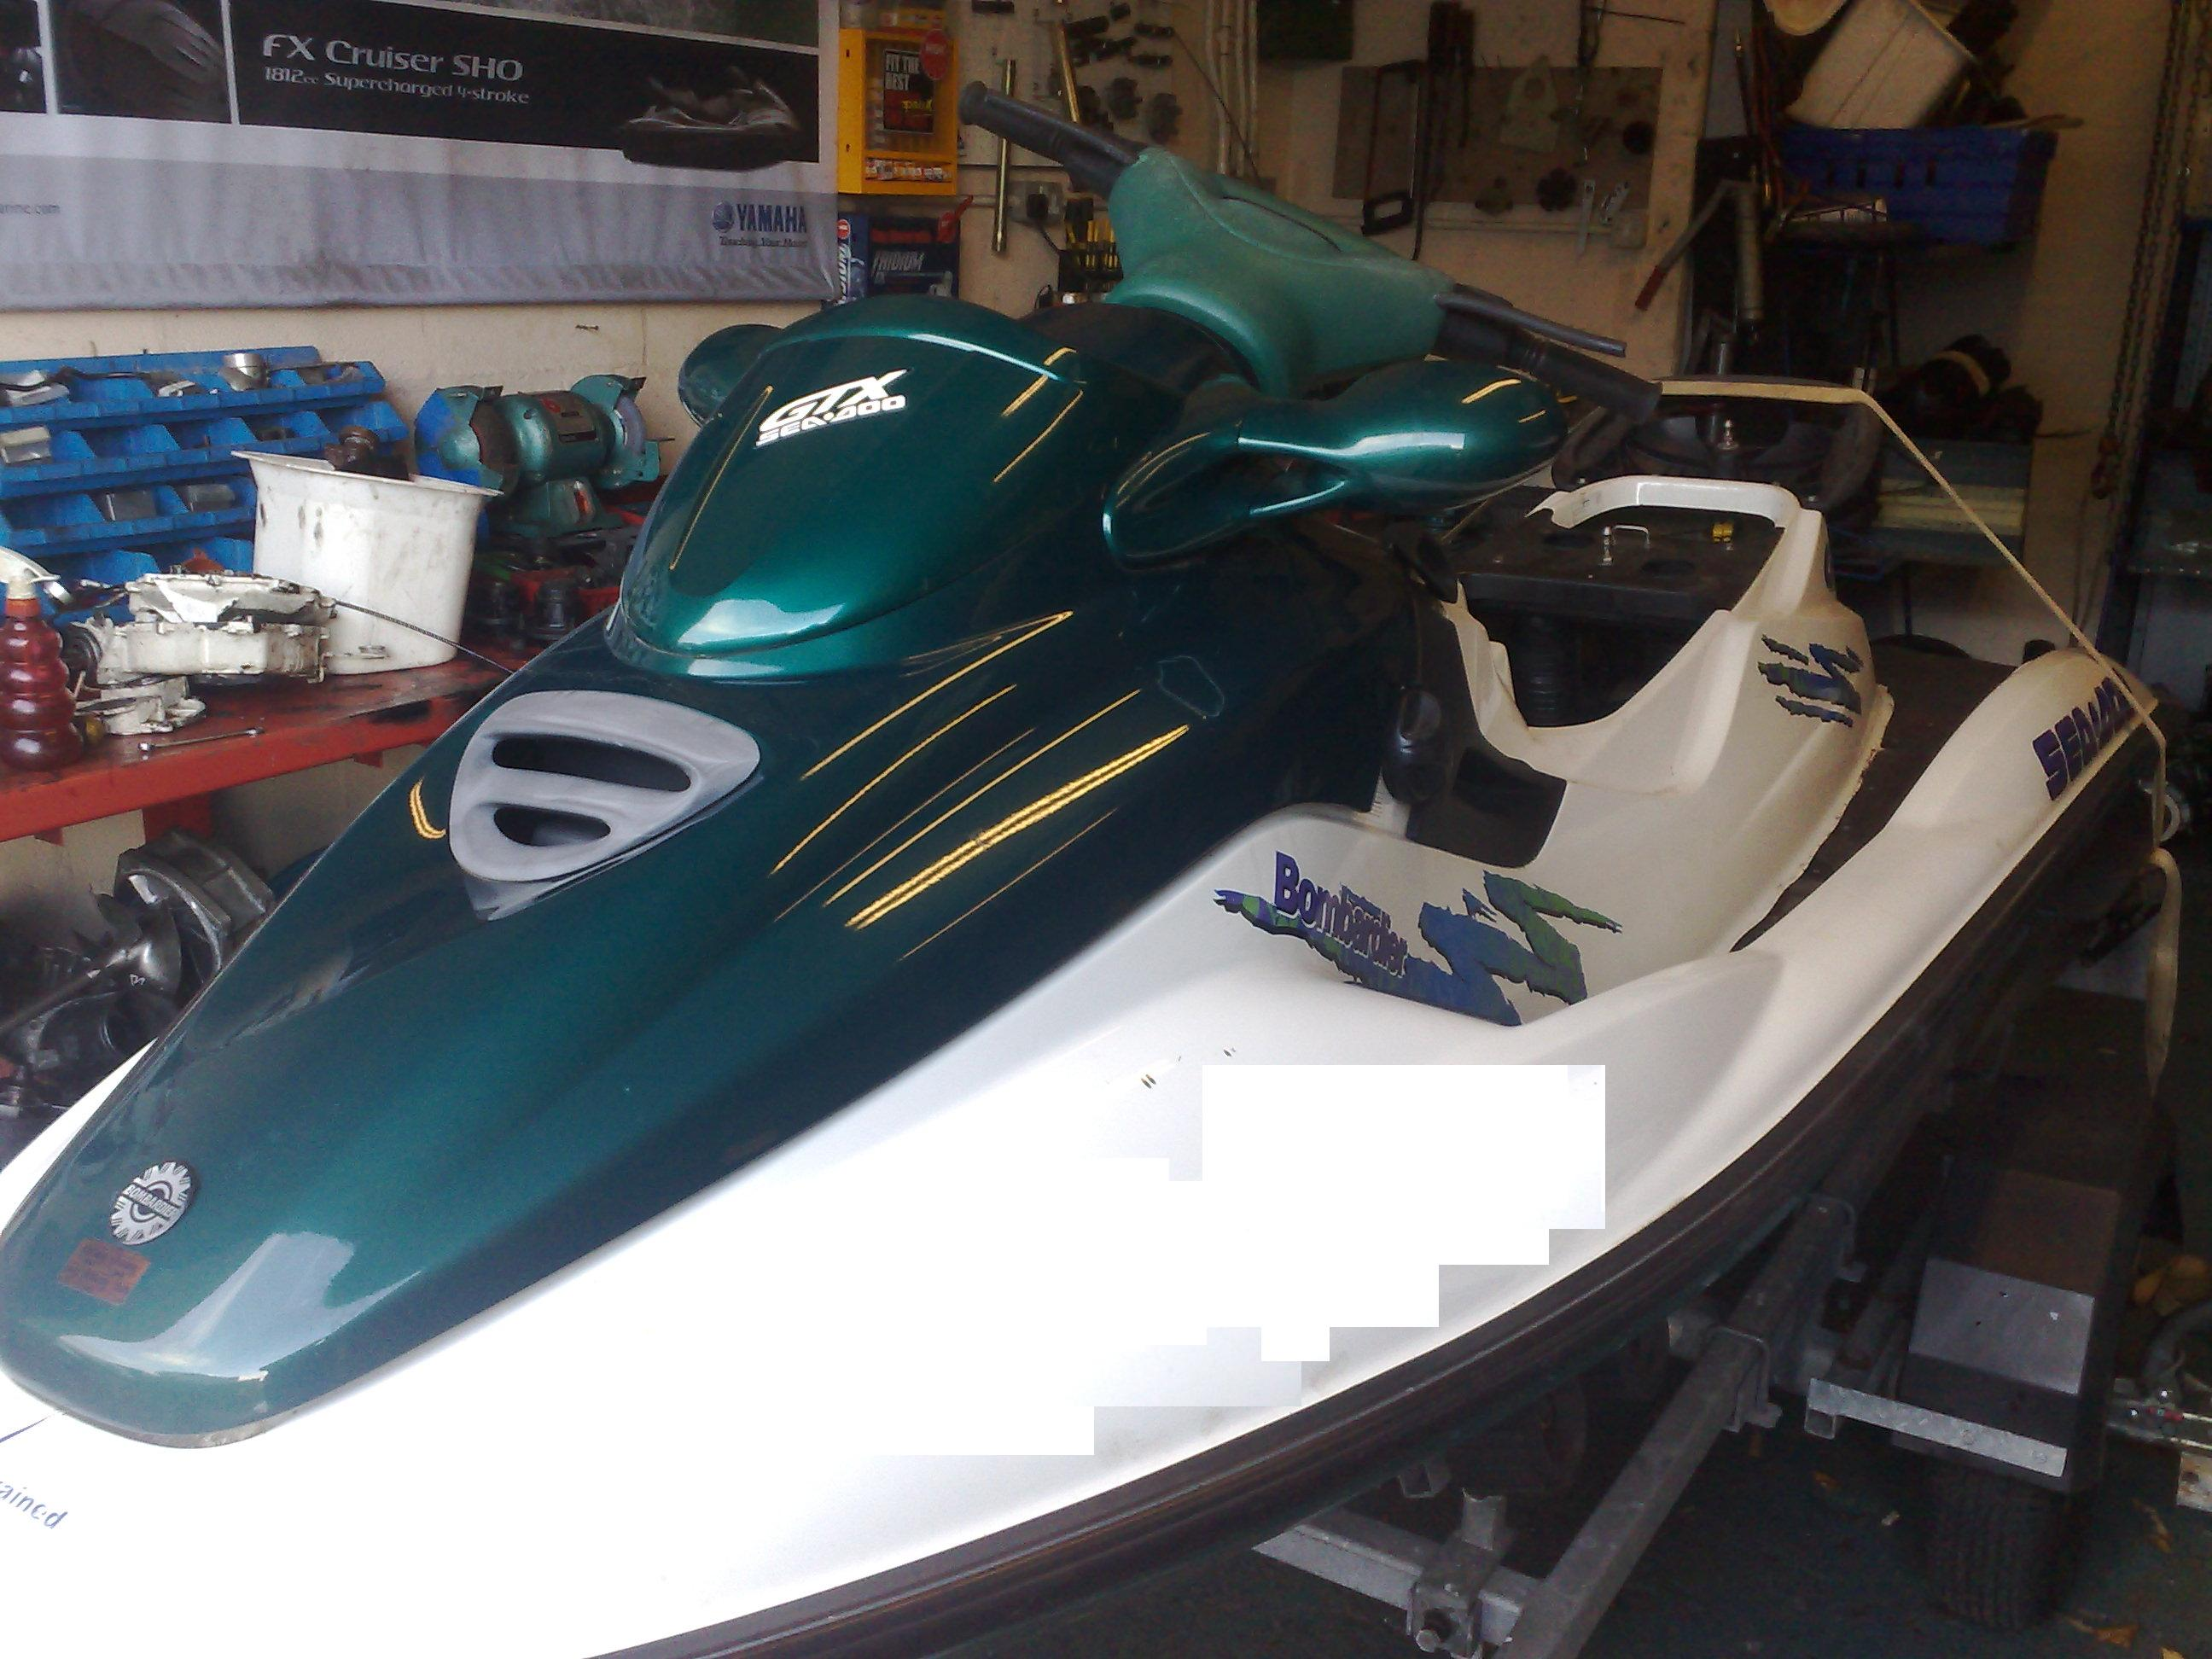 ... Array - 99 seadoo gsx manual rh 99 seadoo gsx manual logoutev de